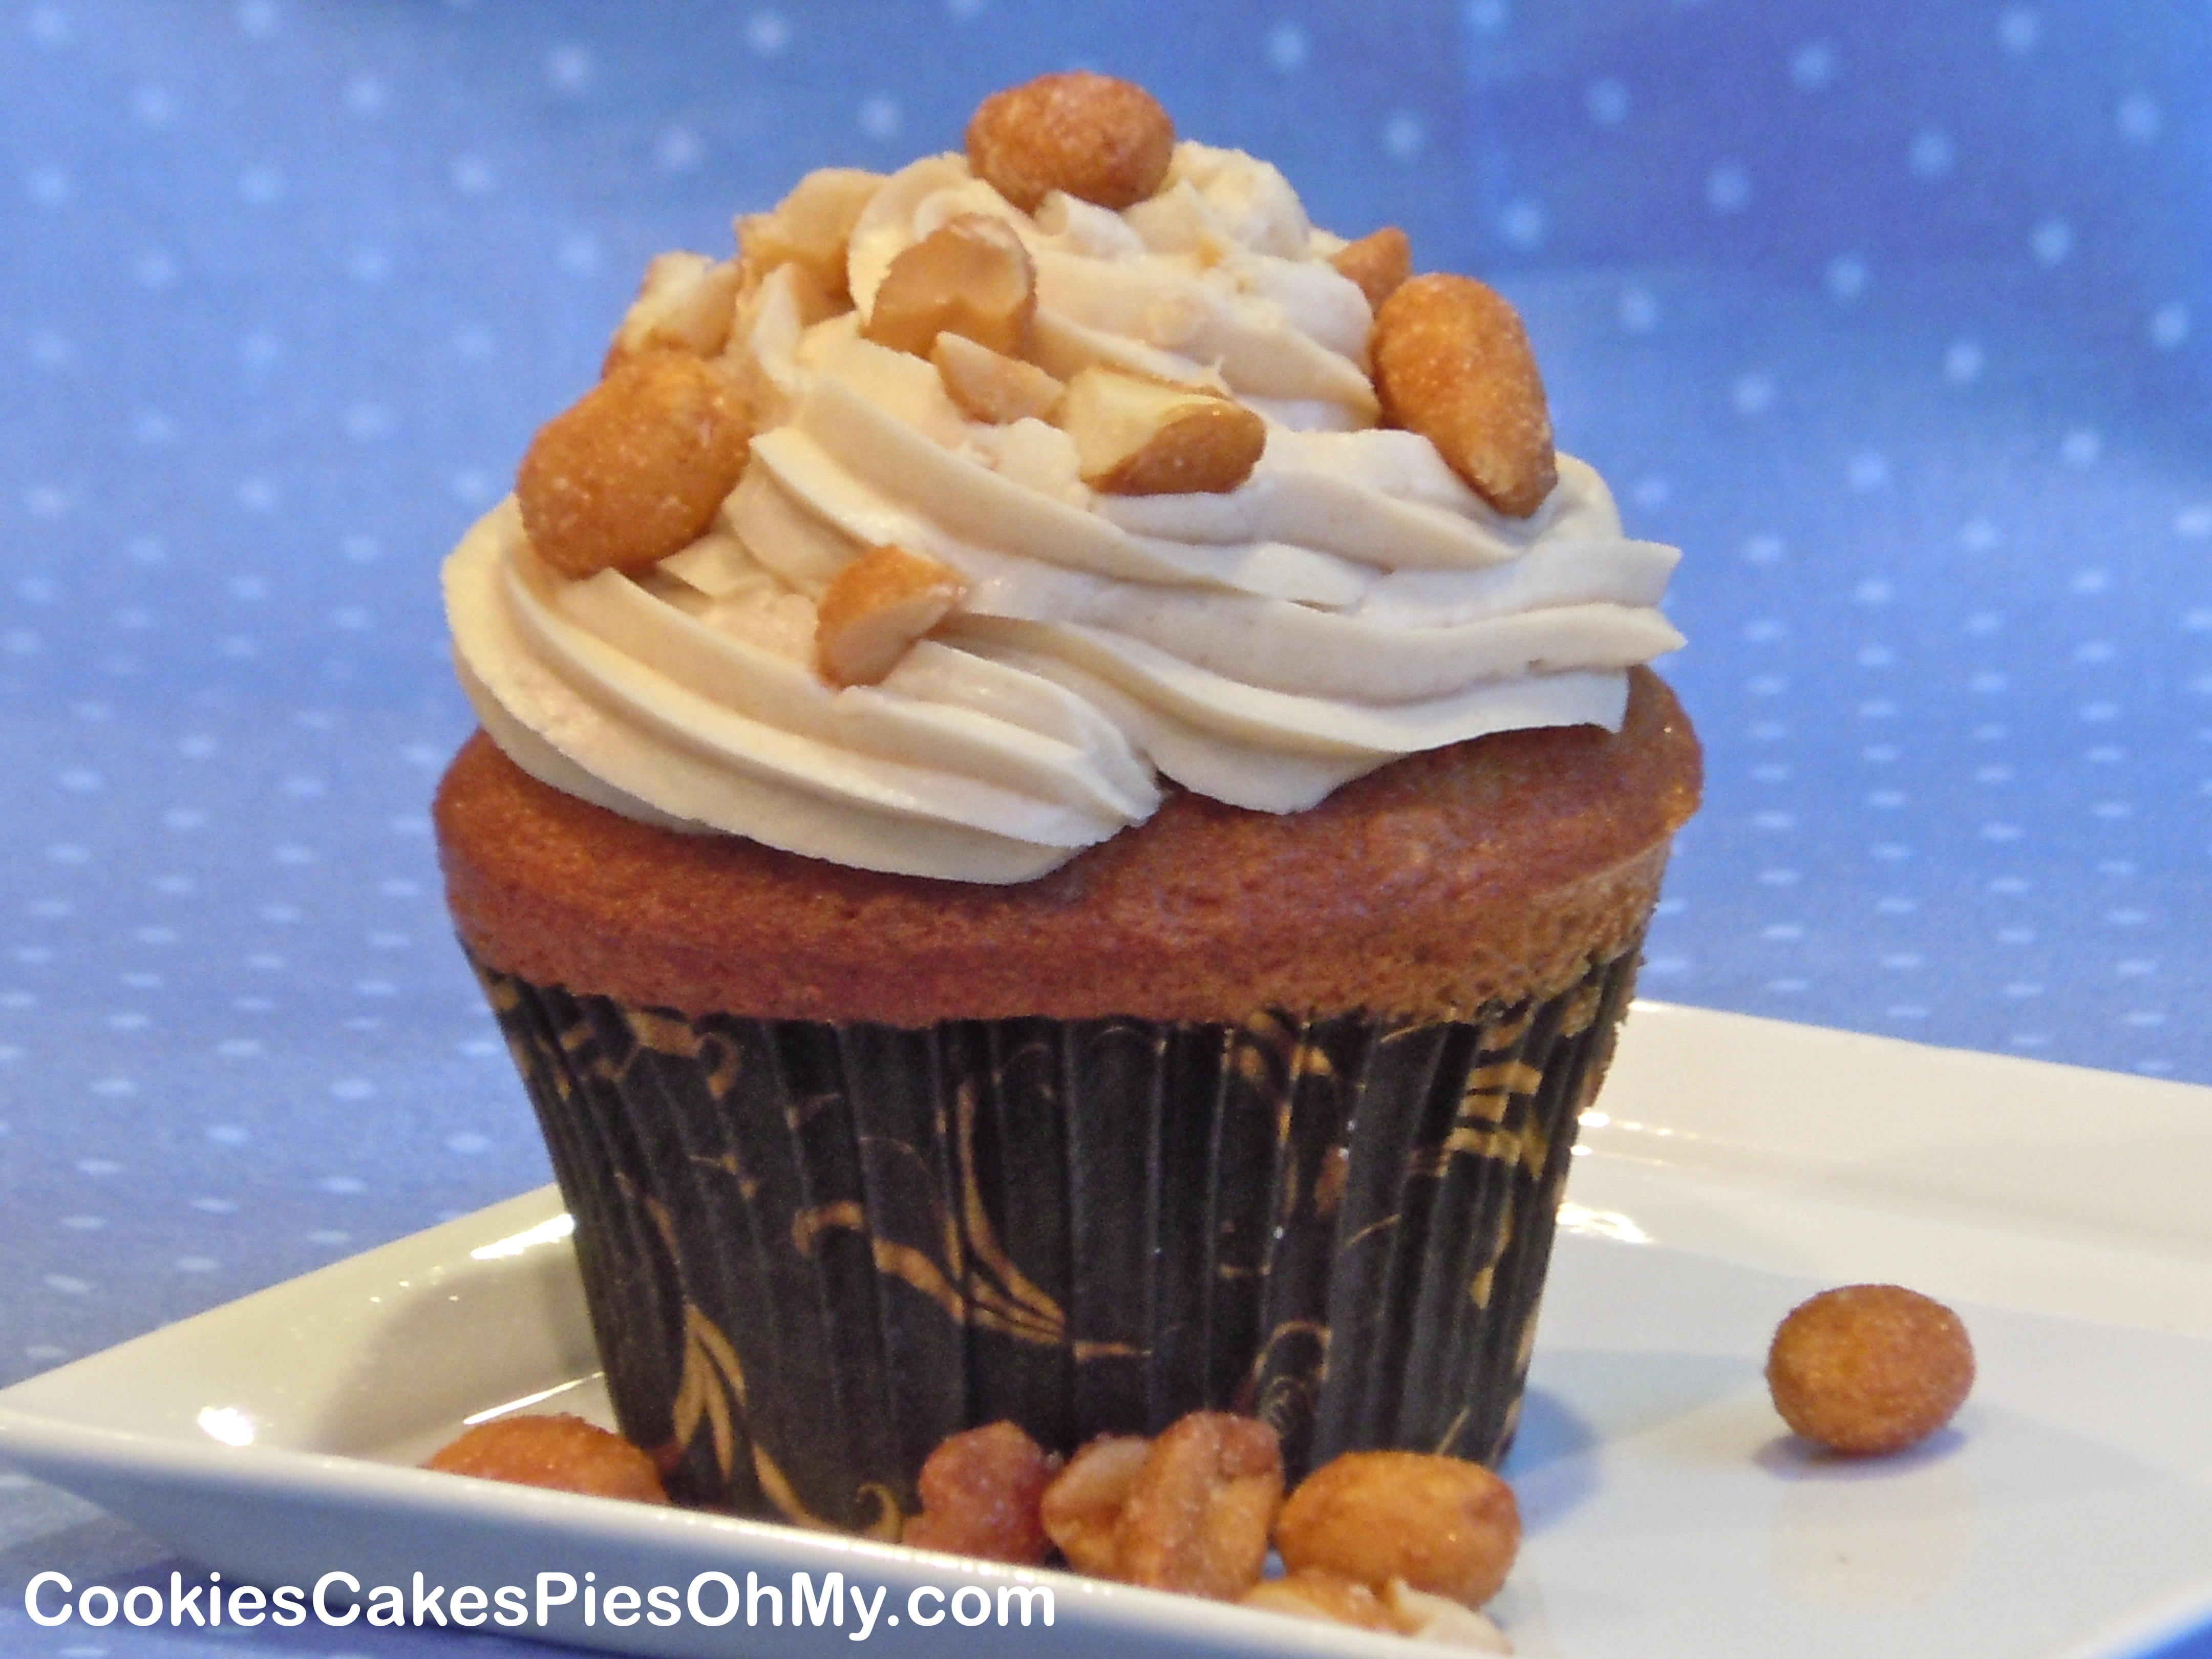 Peanut Butter Banana Cupcakes with Peanut Butter Buttercream Frosting